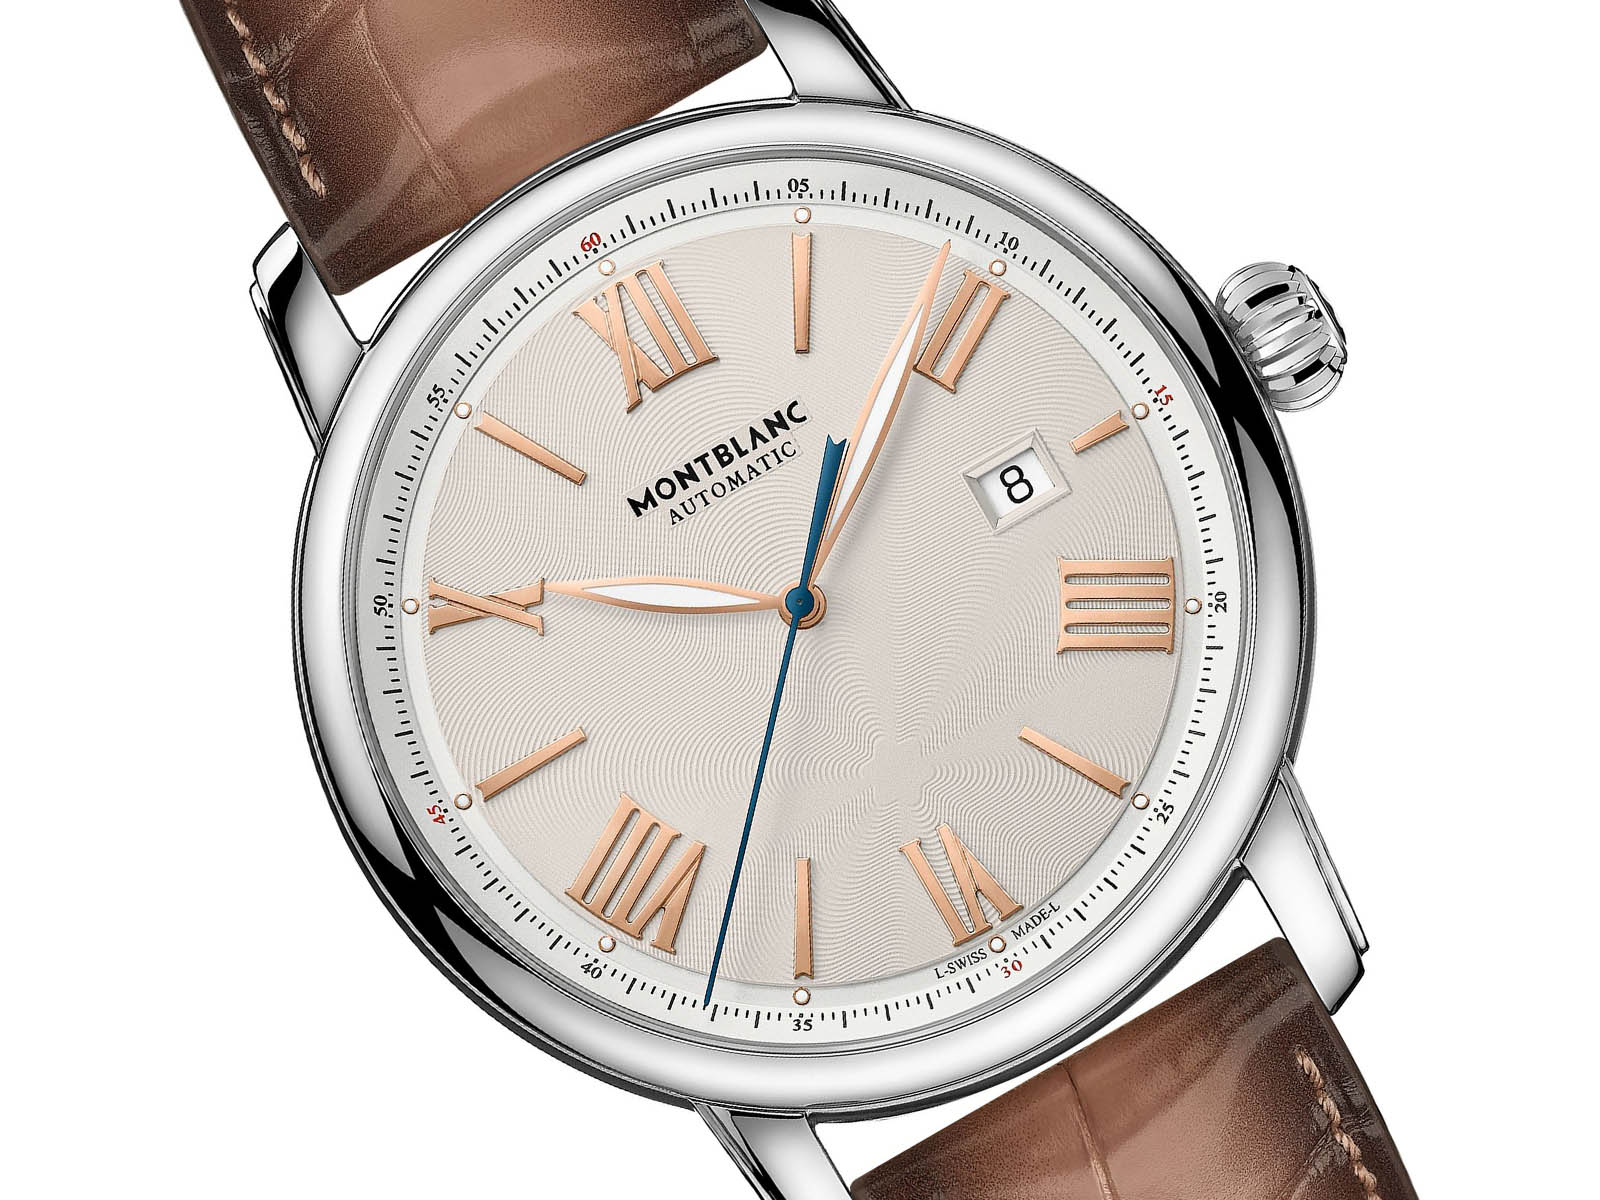 126104-montblanc-star-legacy-automatic-date-43mm-ivory-coloured-dial-2.jpg